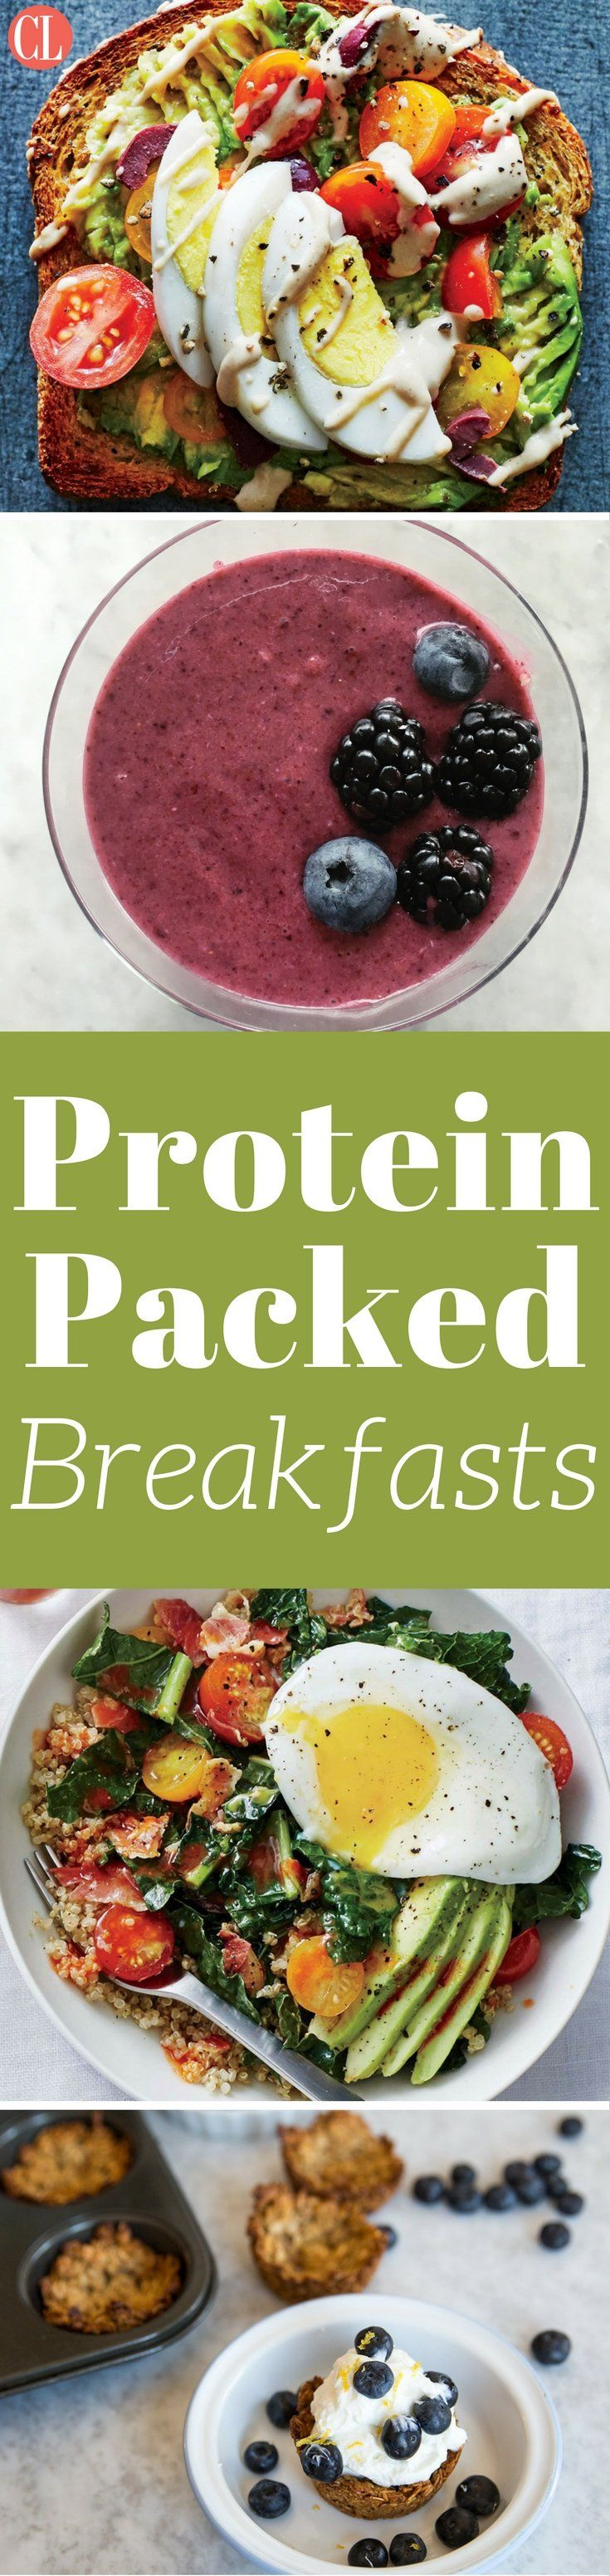 There are so many ways to sneak in extra protein during the most important meal of the day, and we're not just relying on eggs. From yogurt to vegetables to milk, breakfast is a meal that is waiting to be filled with wholesome goodness. Protein is great to consume in the morning as the body will break down the nutrient-dense food throughout the day.   Cooking Light